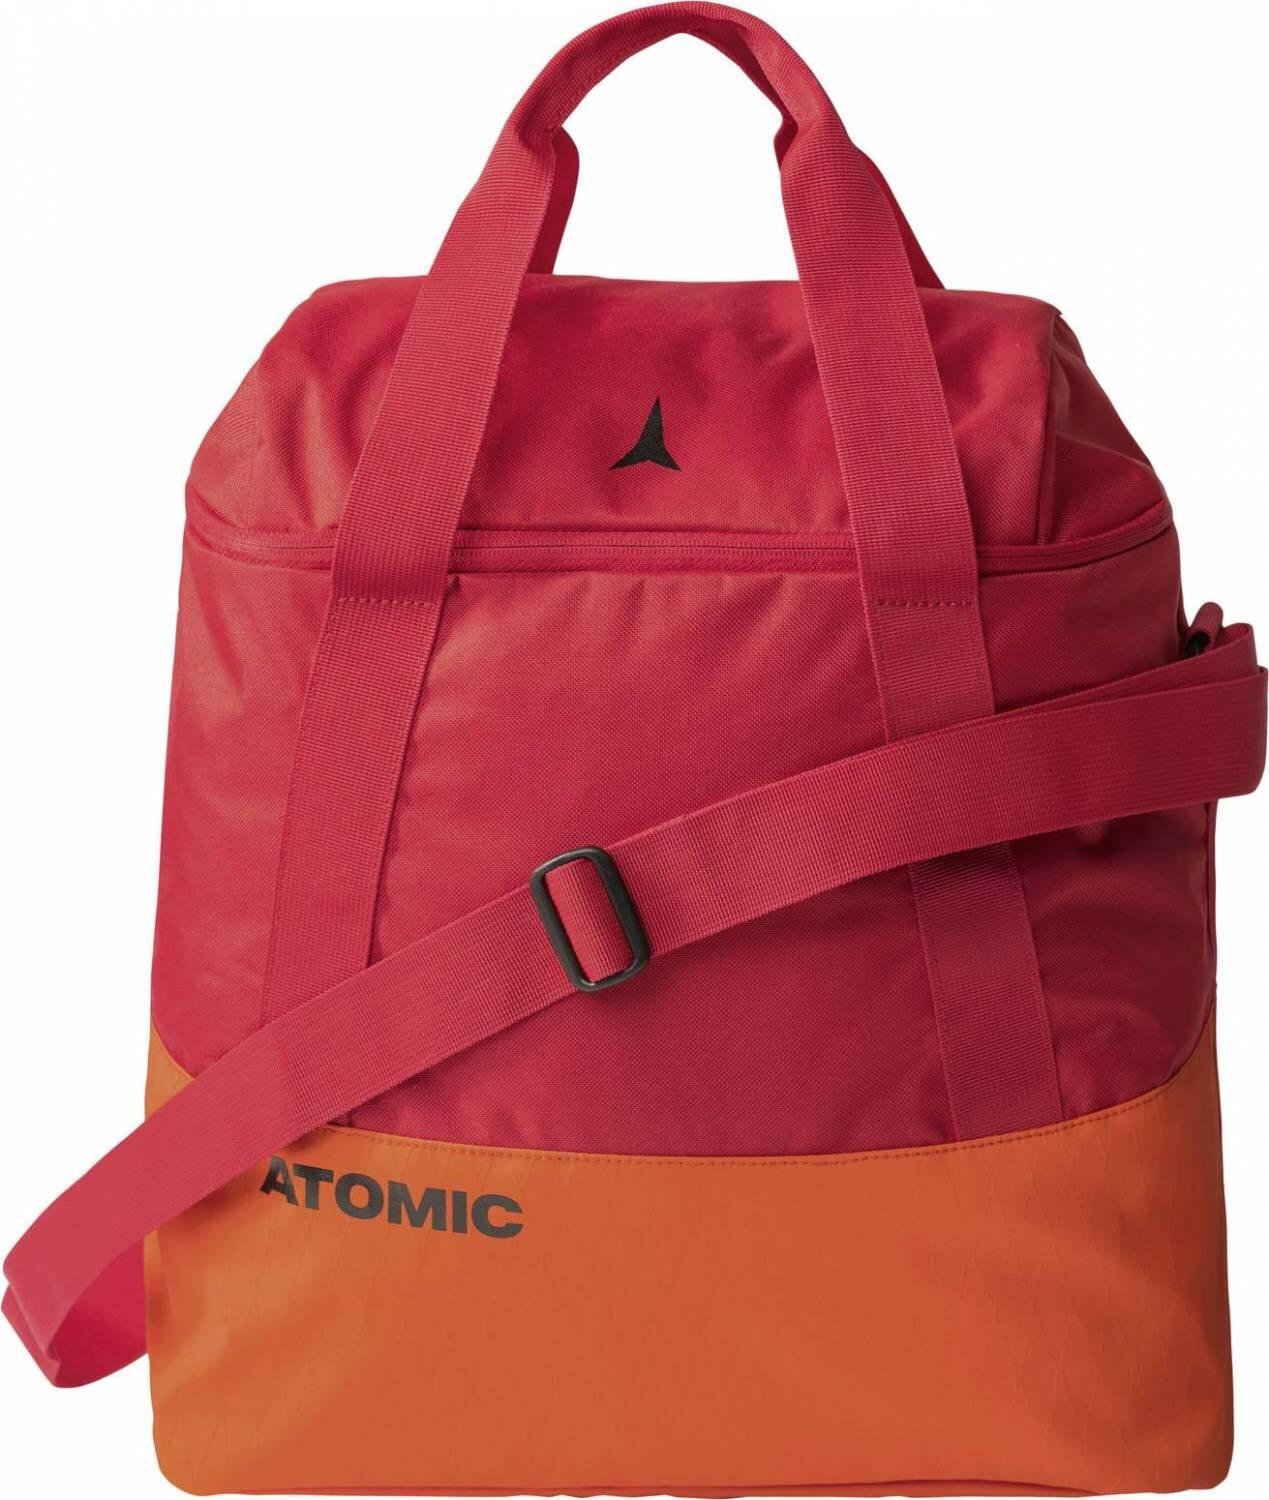 atomic-boot-bag-skischuhtasche-farbe-red-bright-red-